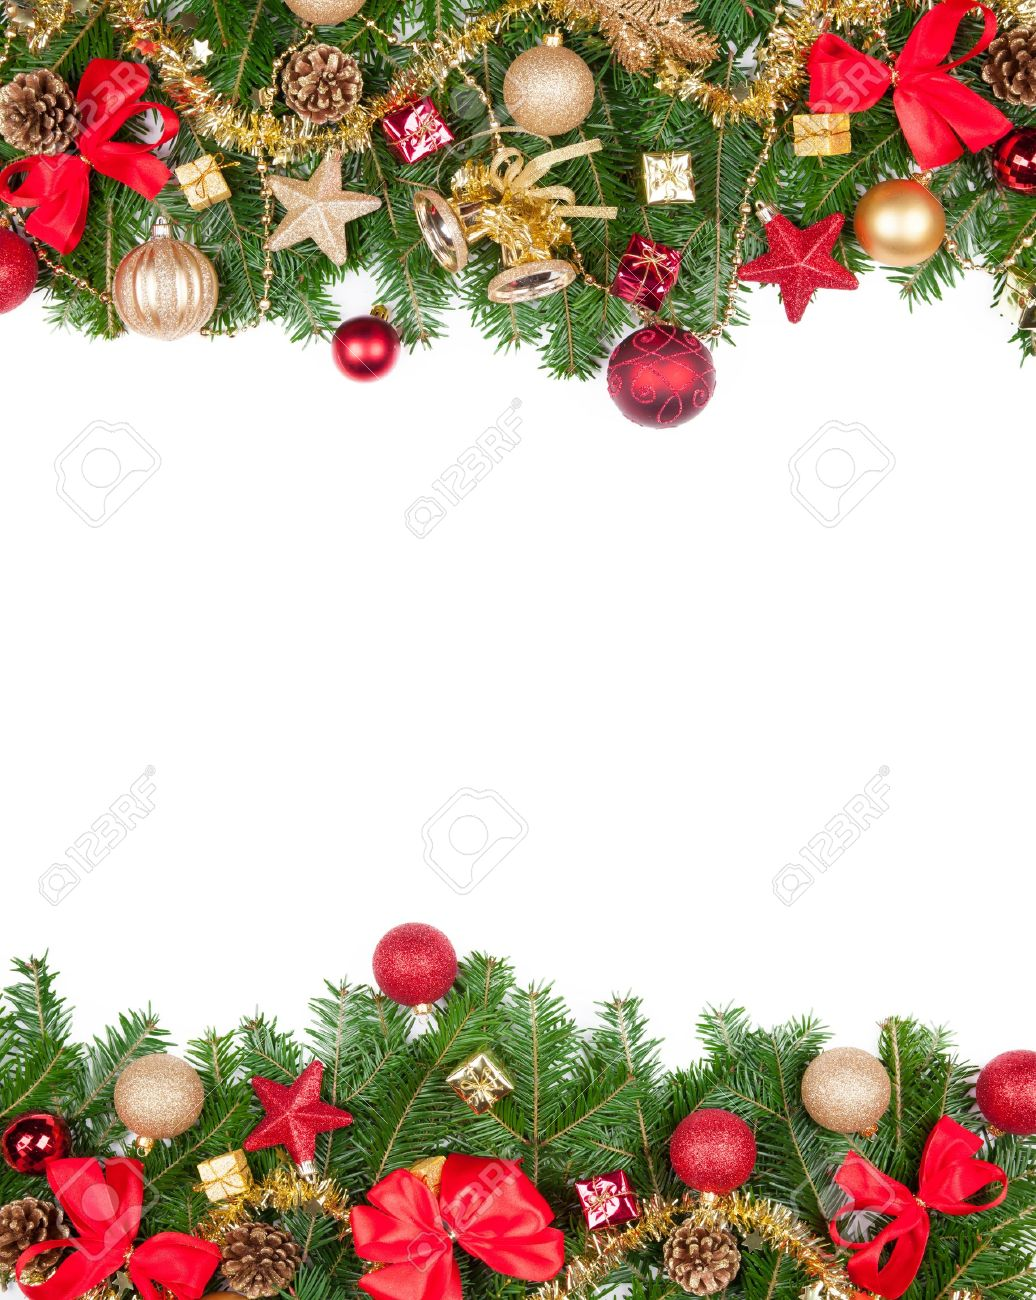 Christmas Frame.Christmas Frame With Free Space For Text